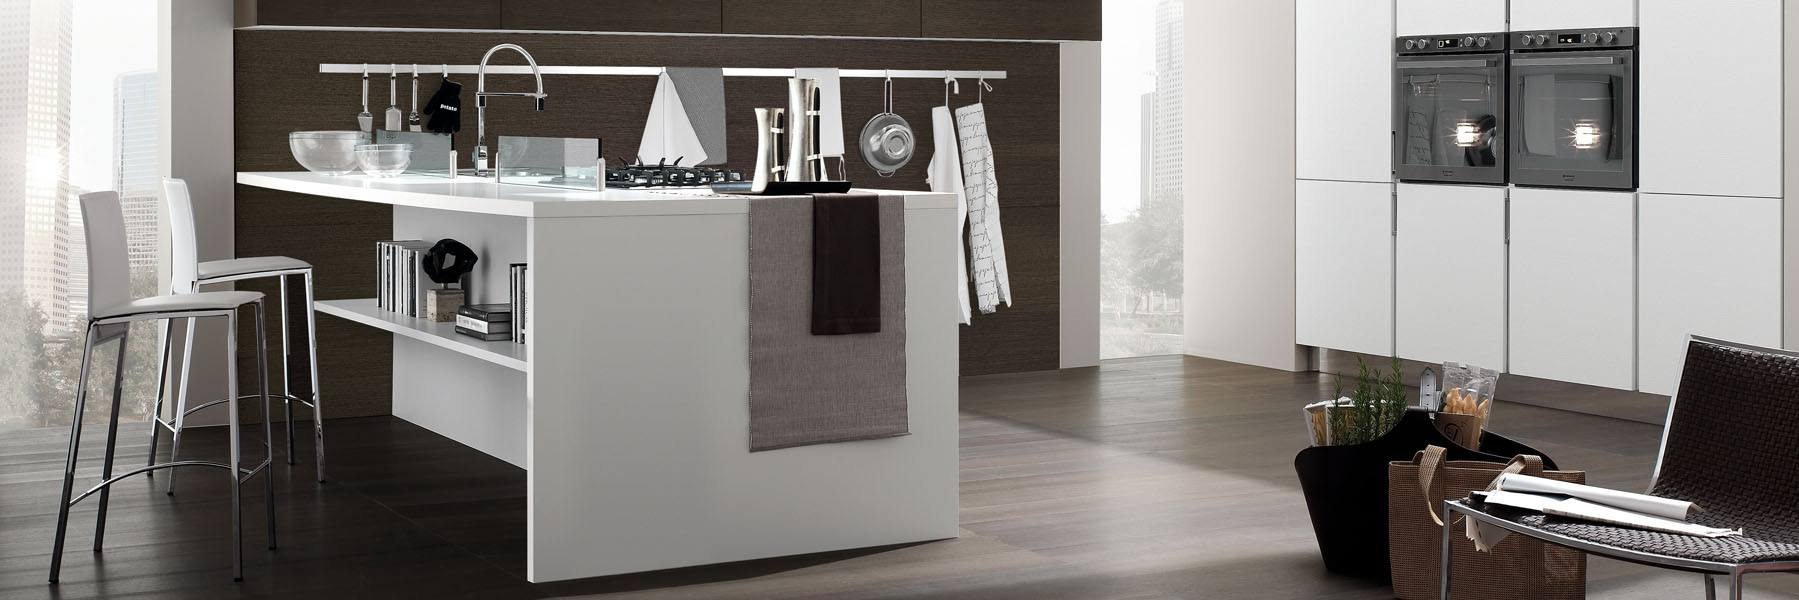 Modern kitchens designs sydney european wardrobes sydney for Kitchen manufacturers sydney